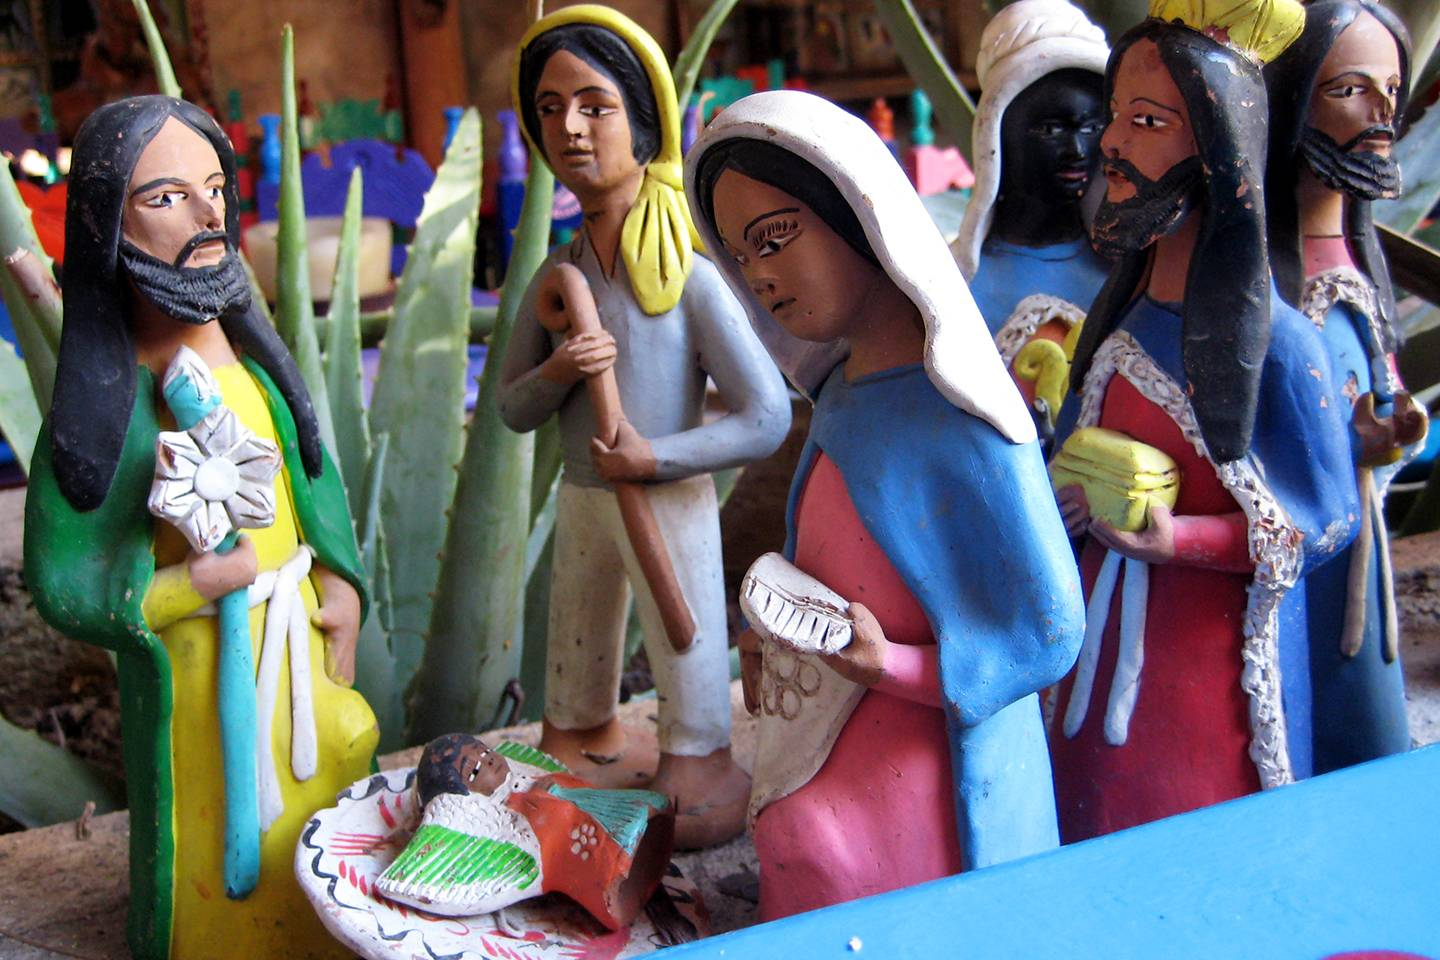 web-nativity-manger-christmas-mexico-flickr-get-directly-down-cc